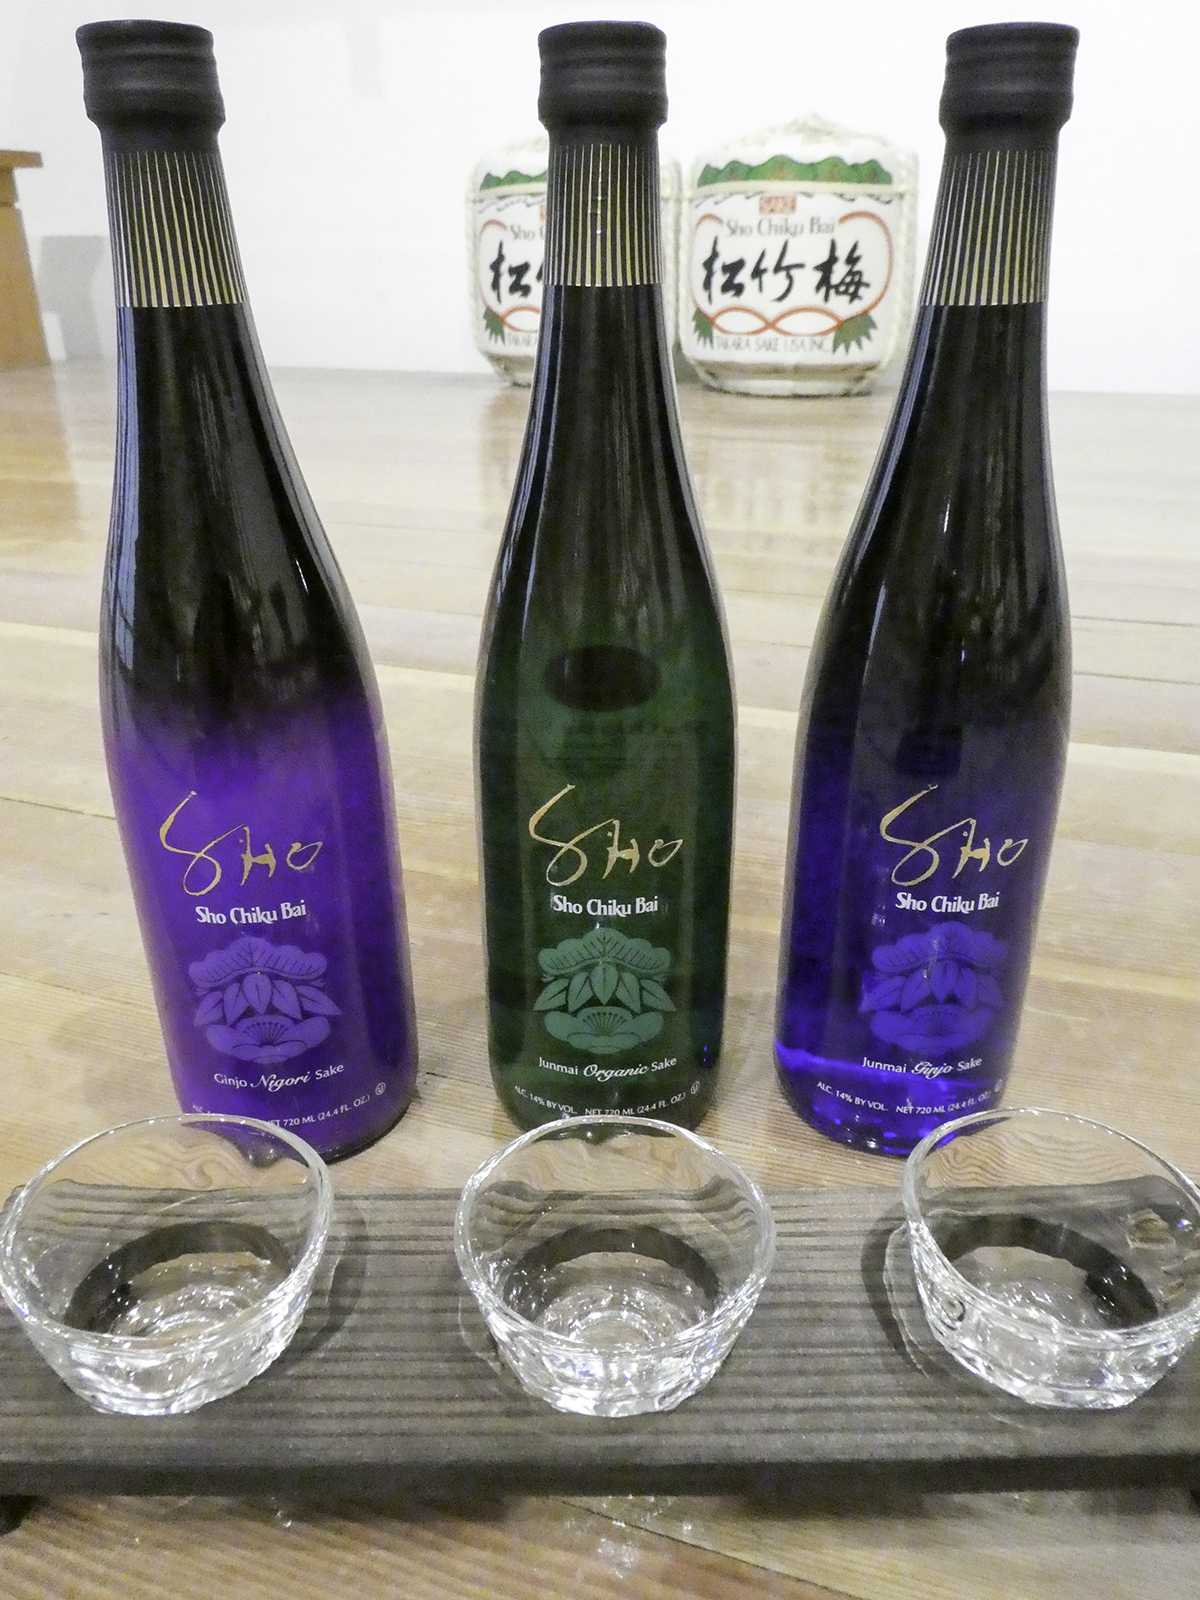 """Sho Chiku Bai SHO Tasting Flight Set"" 3 types of Sho Chiku Bai SHO and original flight glass set"